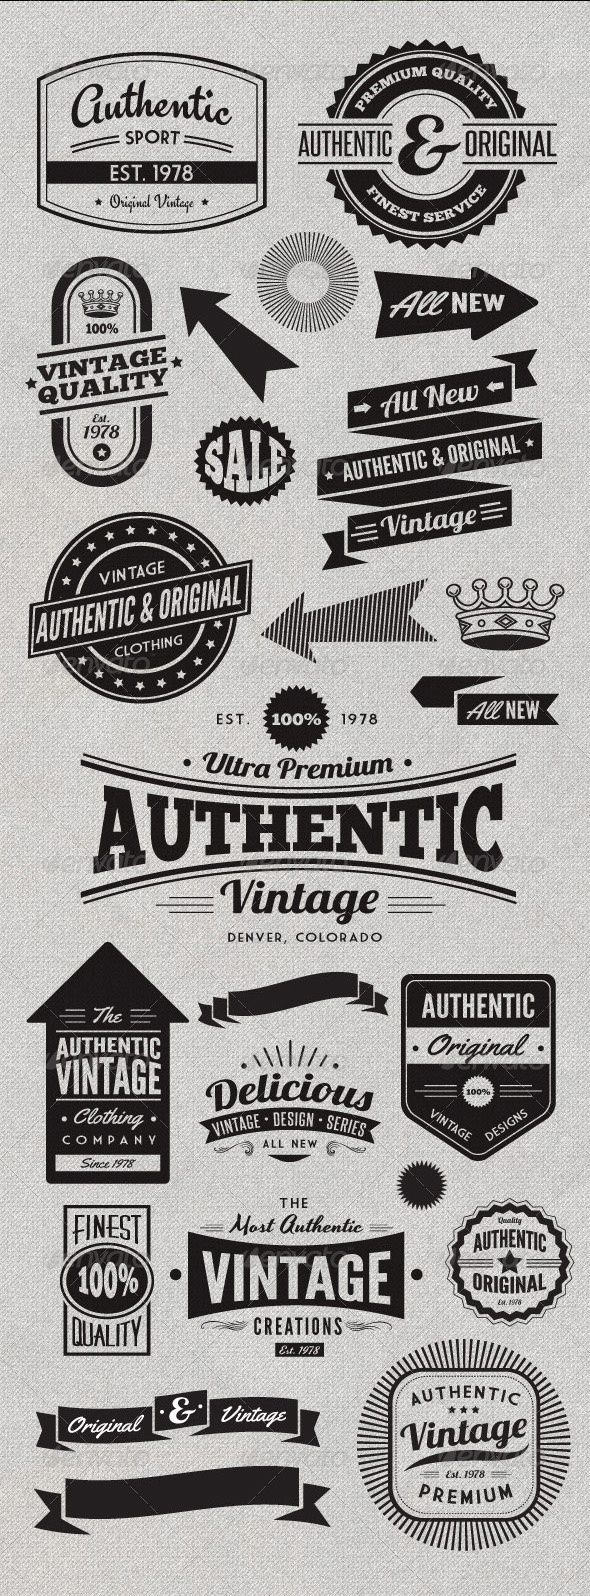 Vintage Style Badges and Logos - An Addictive Pinner